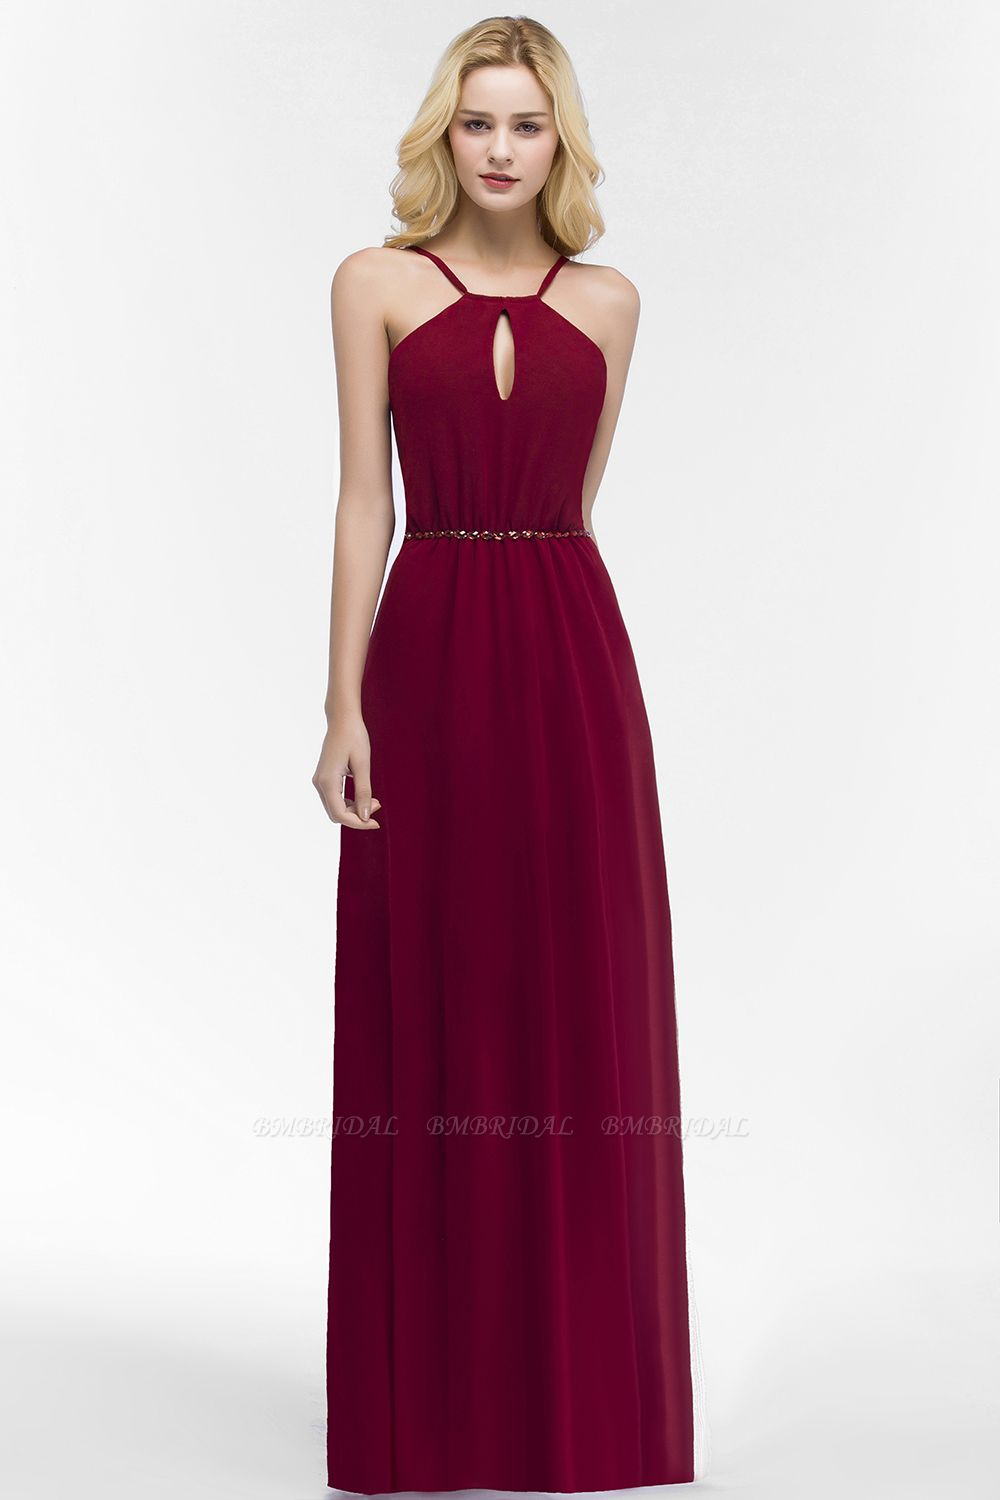 Burgundy Spaghetti Straps Long Bridesmaid Dress with Beading Sash